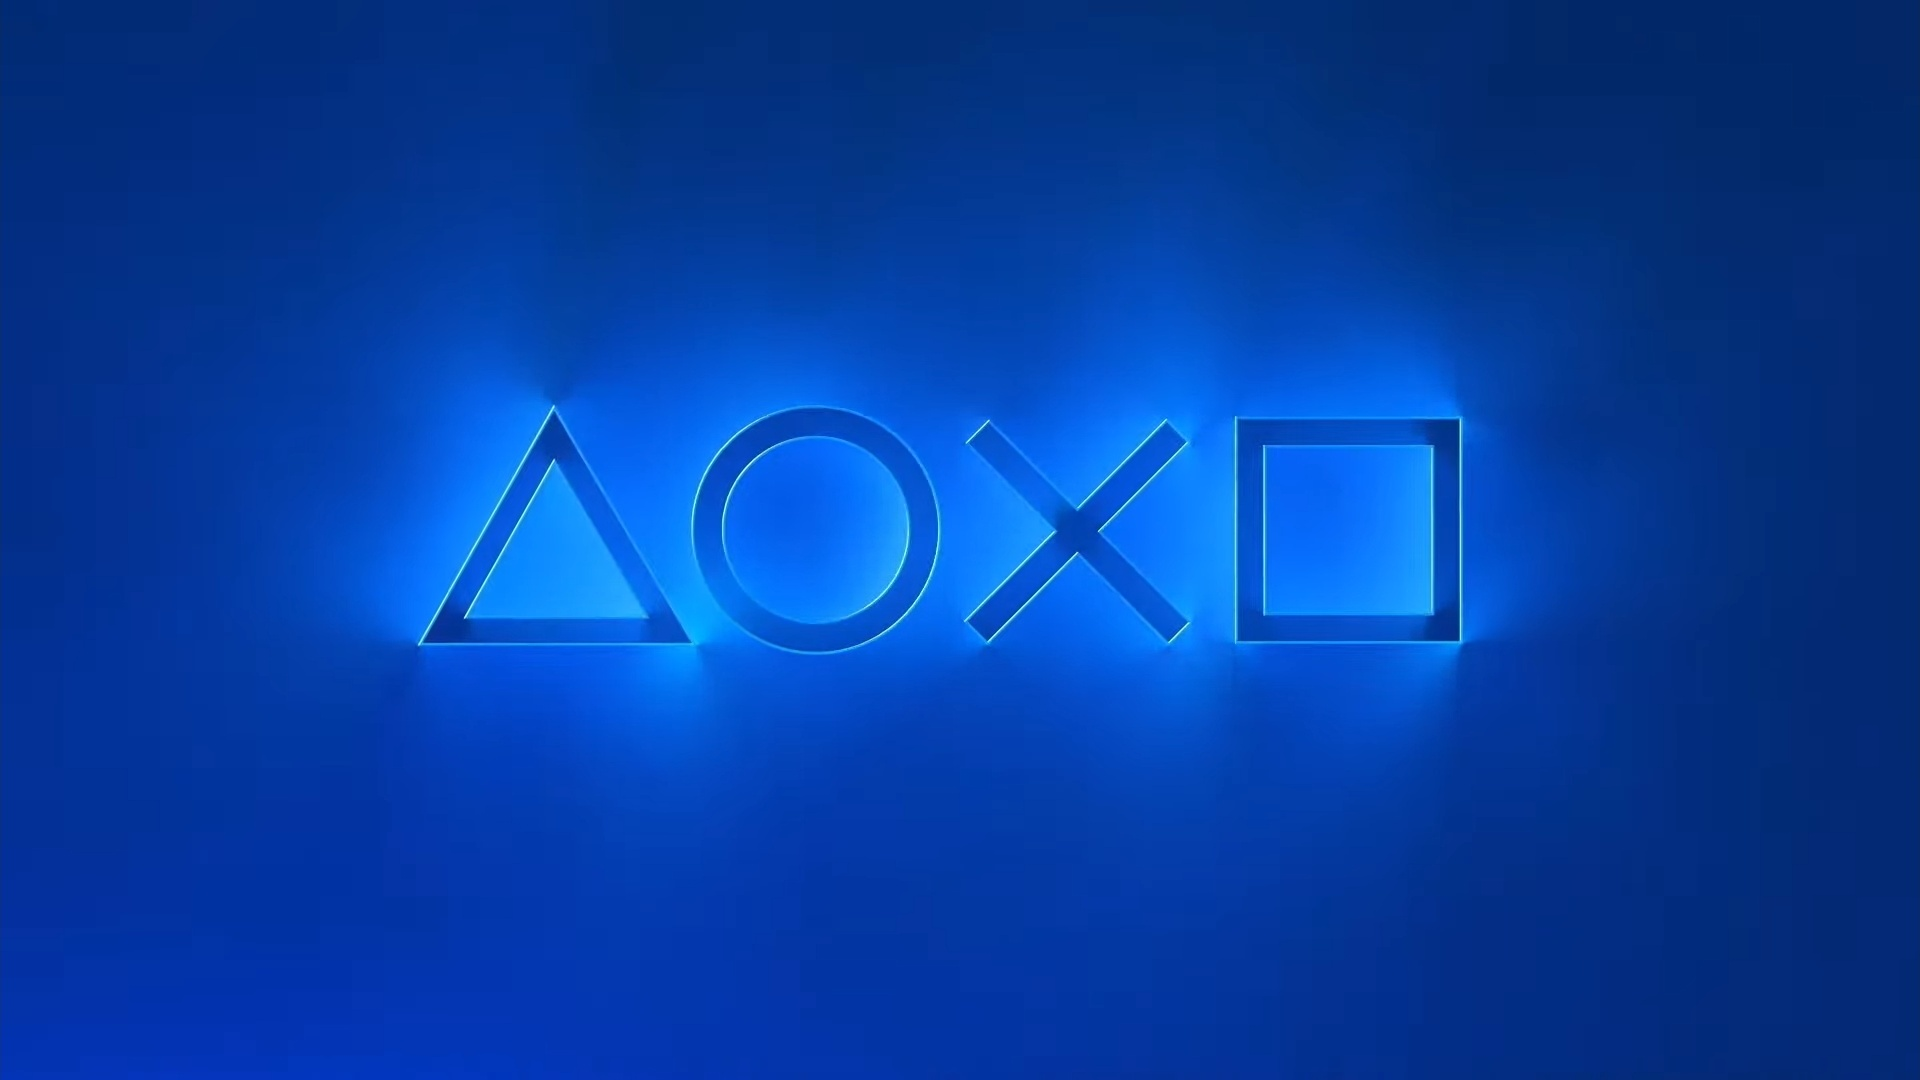 PlayStation 5 pricing and launch date announced